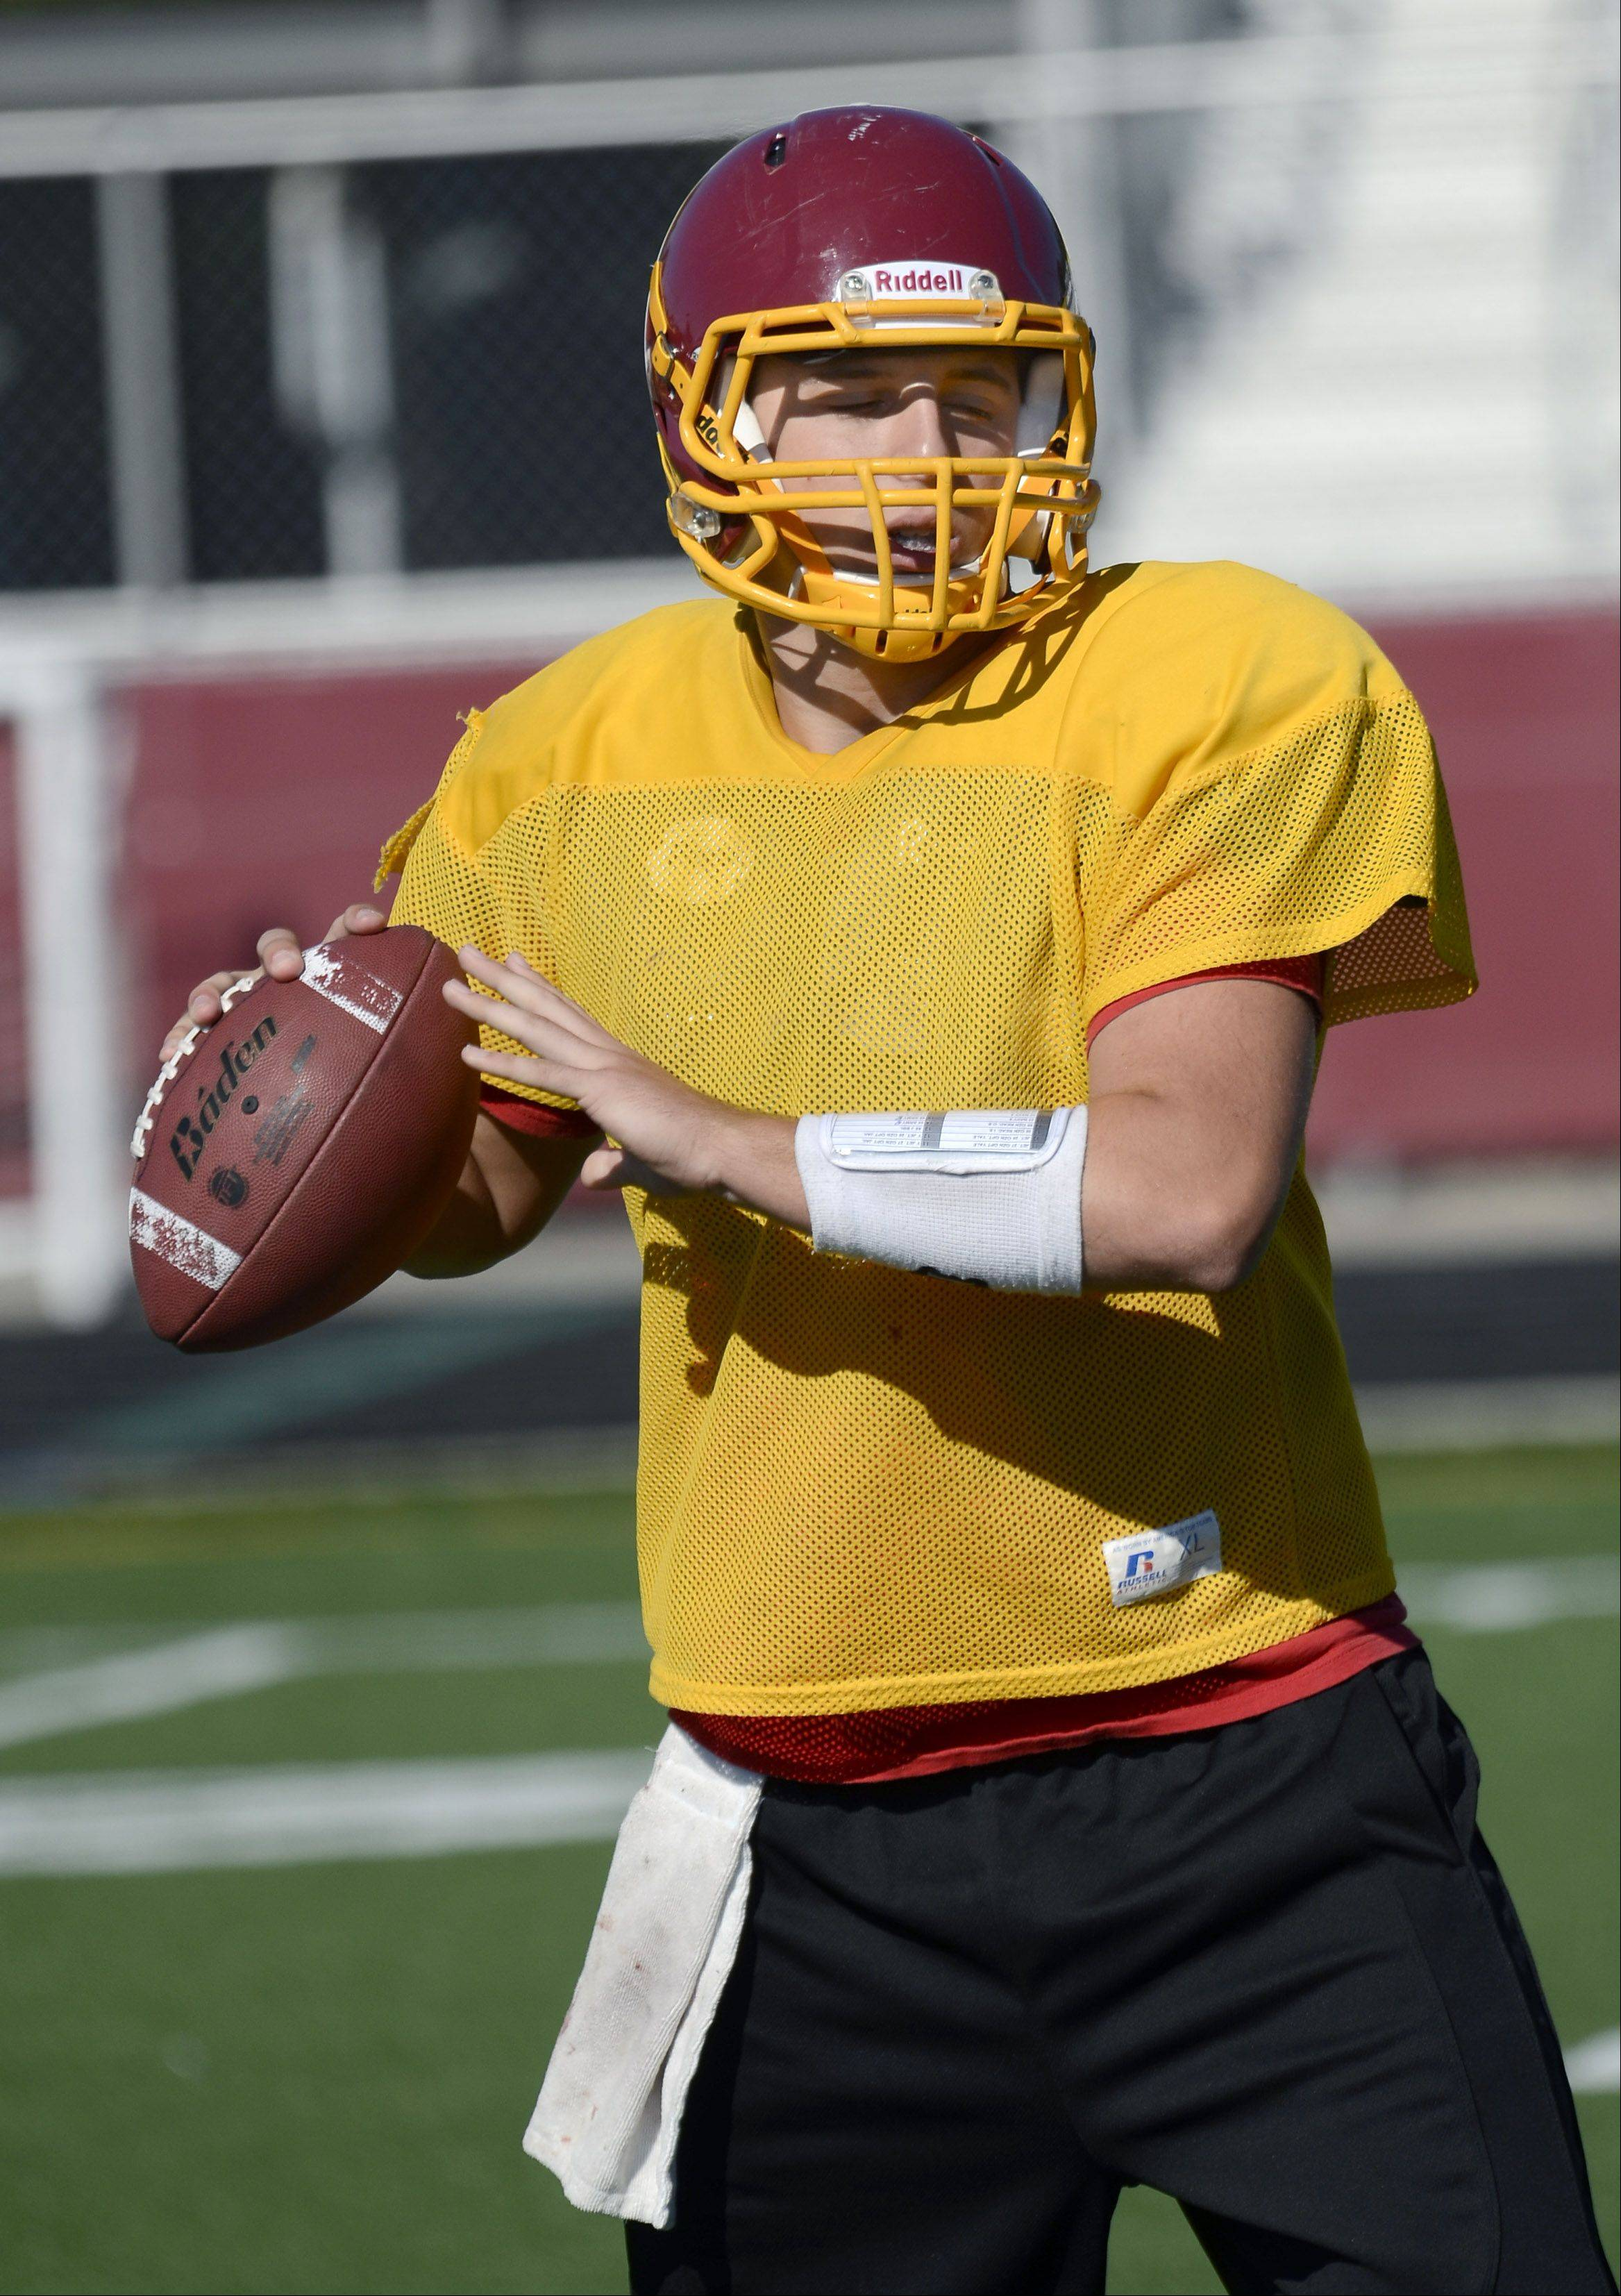 Schaumburg quarterback Nick Anzelmo will continue his football career and education at Carthage College in Kenosha.